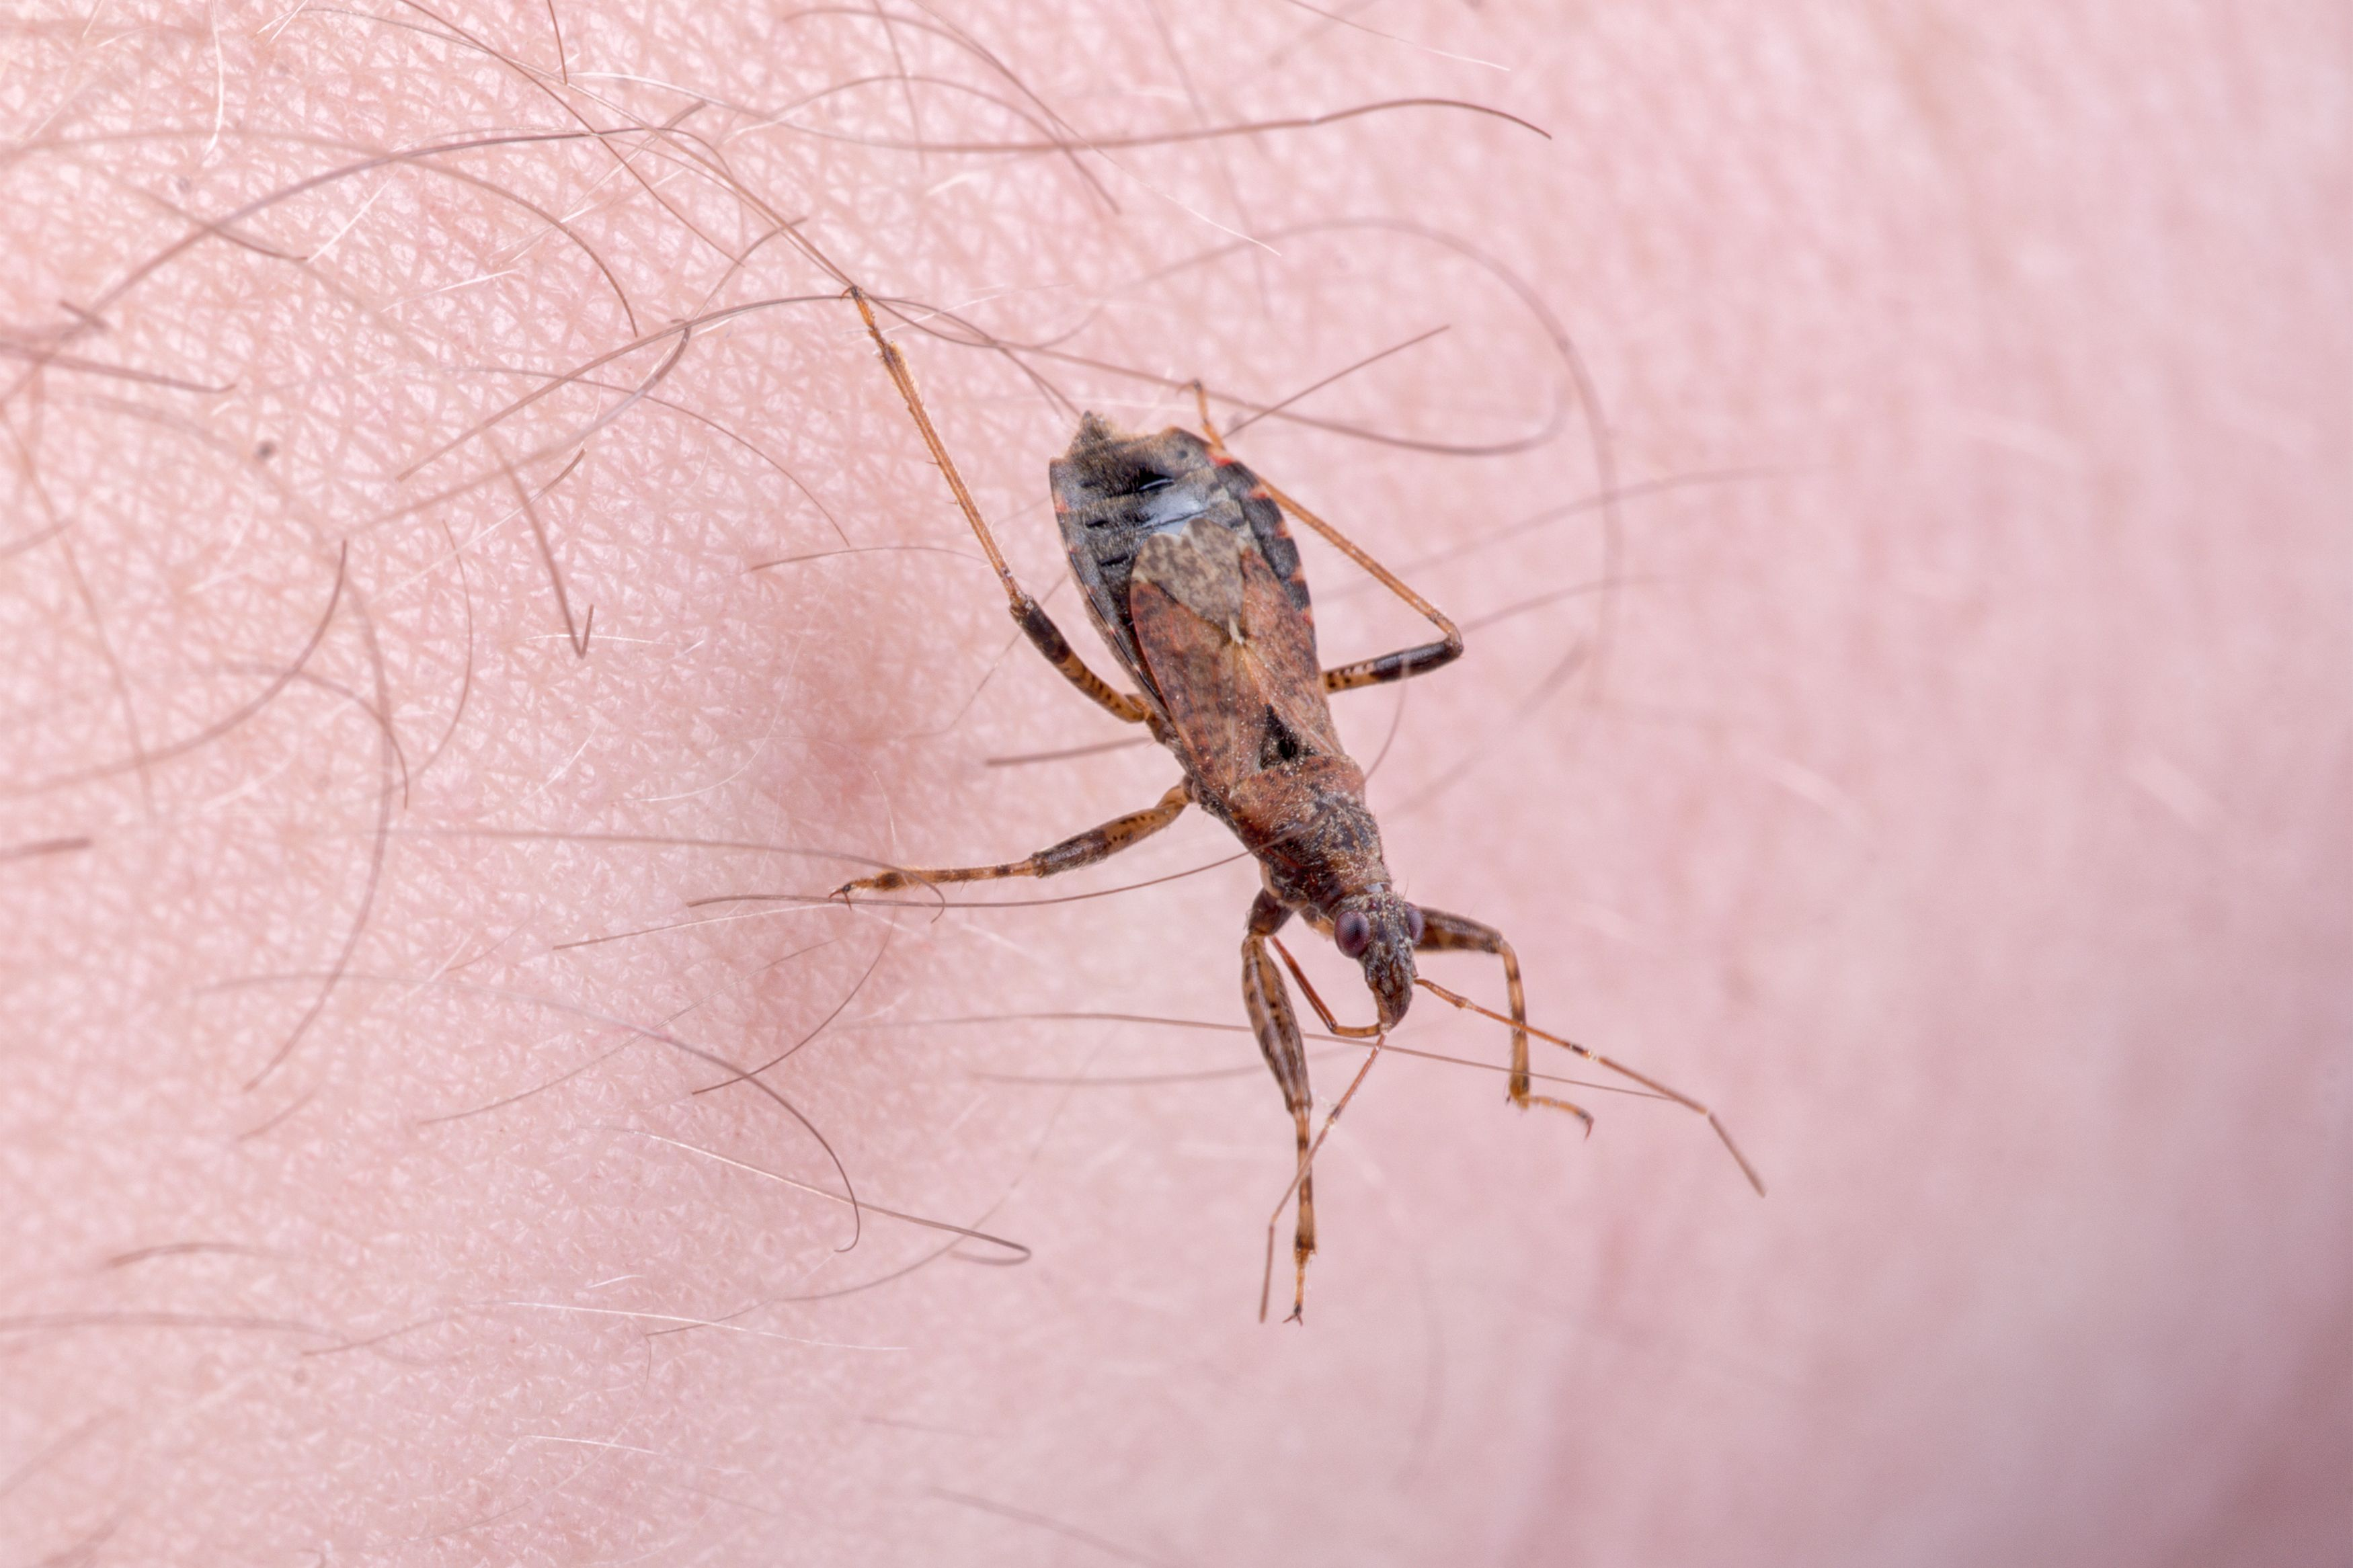 Kissing Bug Bites Victims and Spreads Chagas Disease Through Its Poop